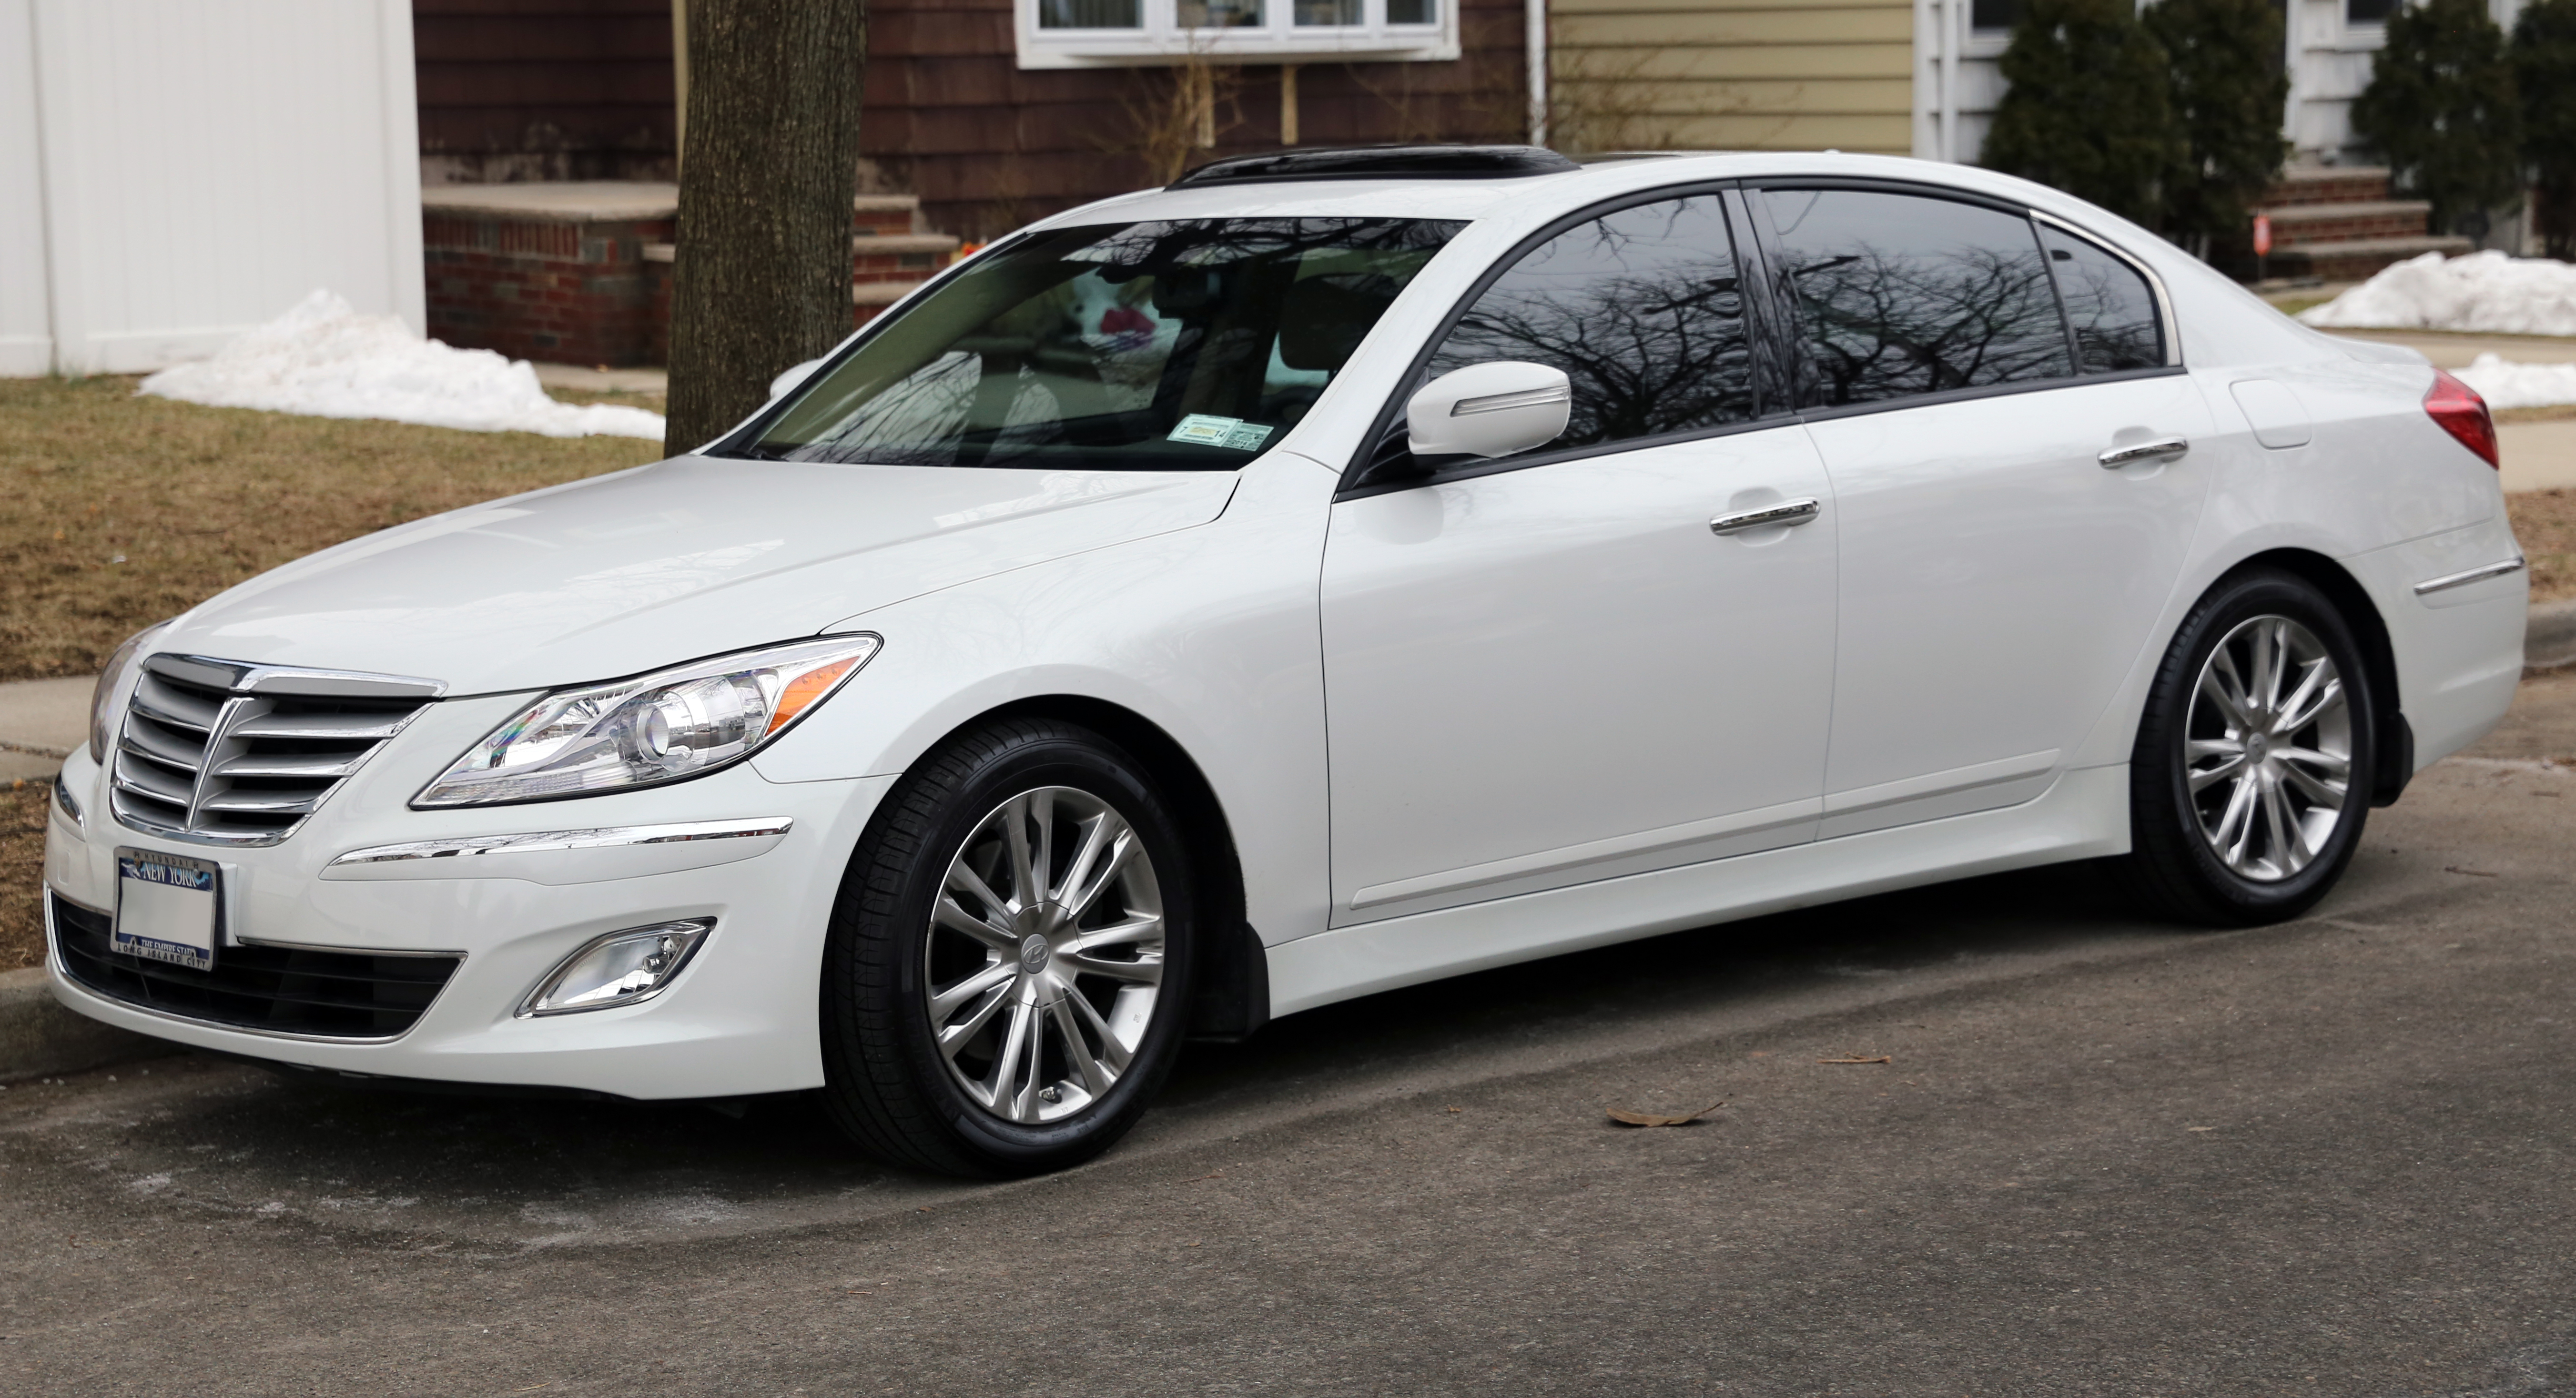 file 2013 hyundai genesis 3 8 sedan front left